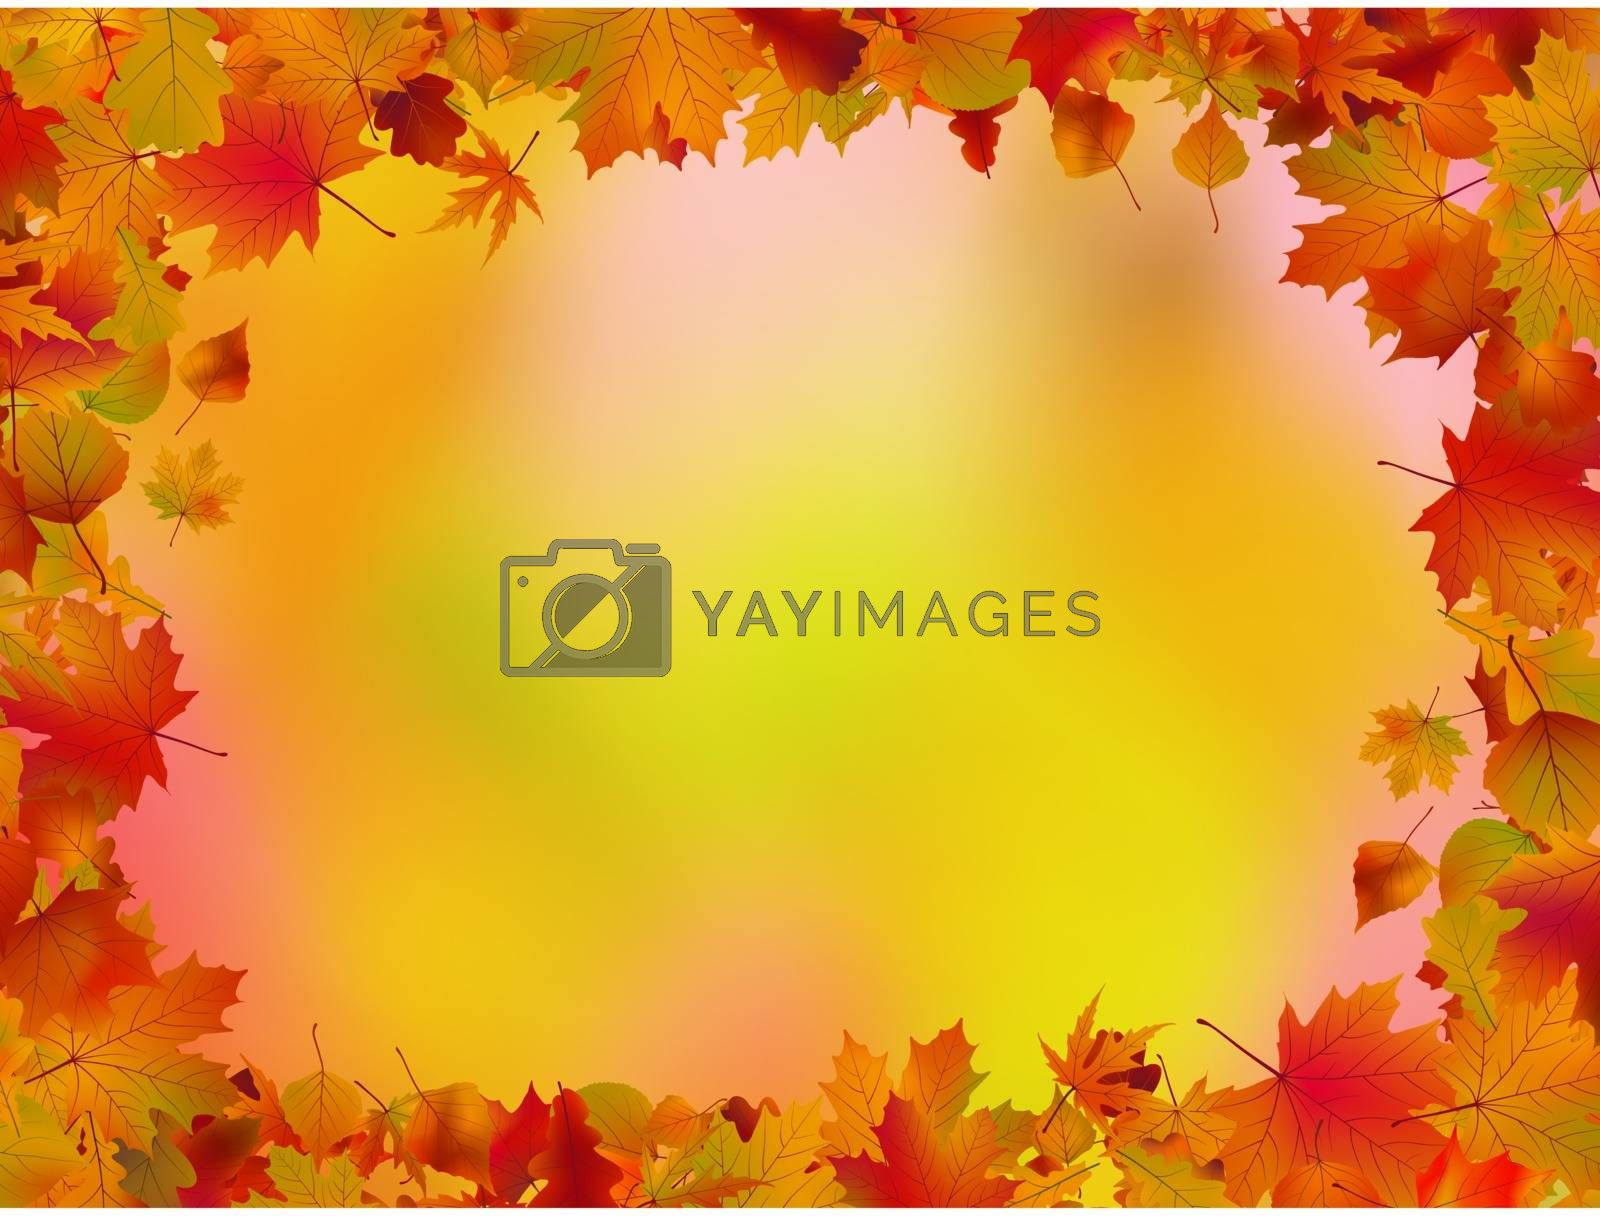 Autumn leaves border for your text. EPS 8 vector file included